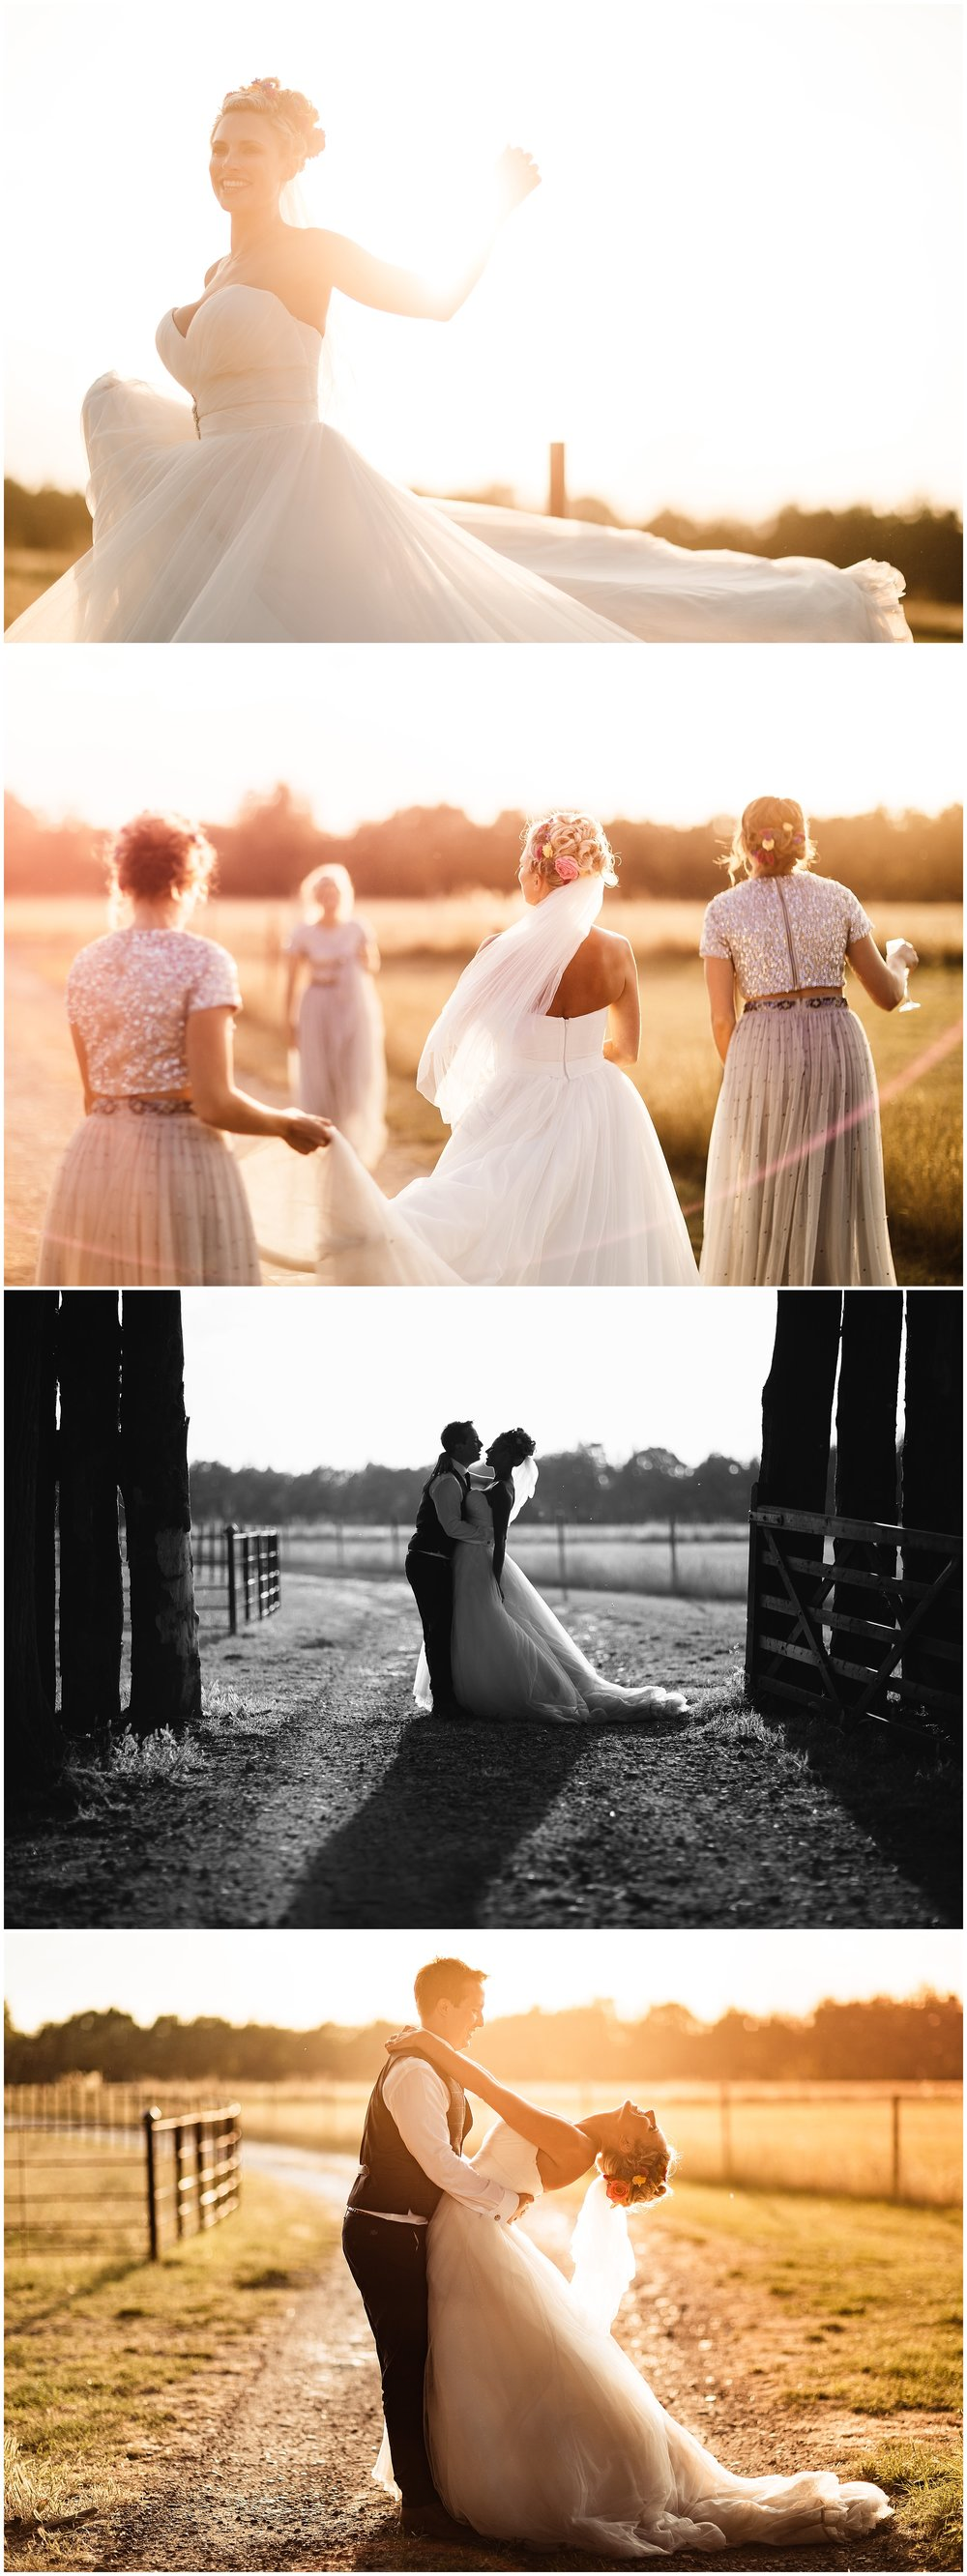 A bride and groom and bridesmaids at sunset in yorkshire